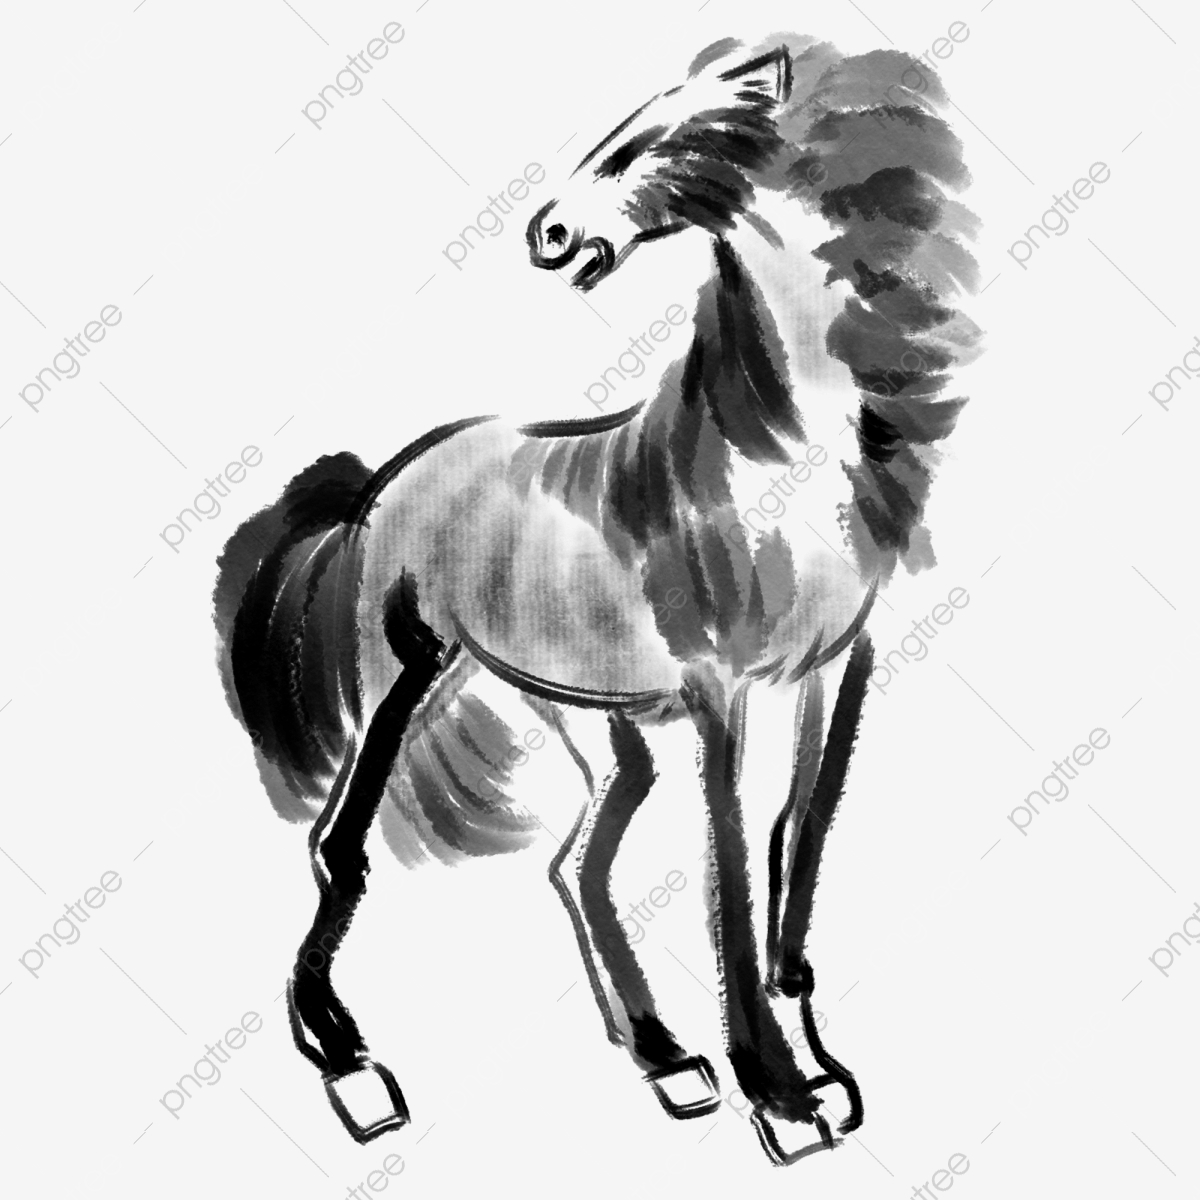 Black Galloping Horses Horse Clipart Black And White Black Horse Png Transparent Clipart Image And Psd File For Free Download